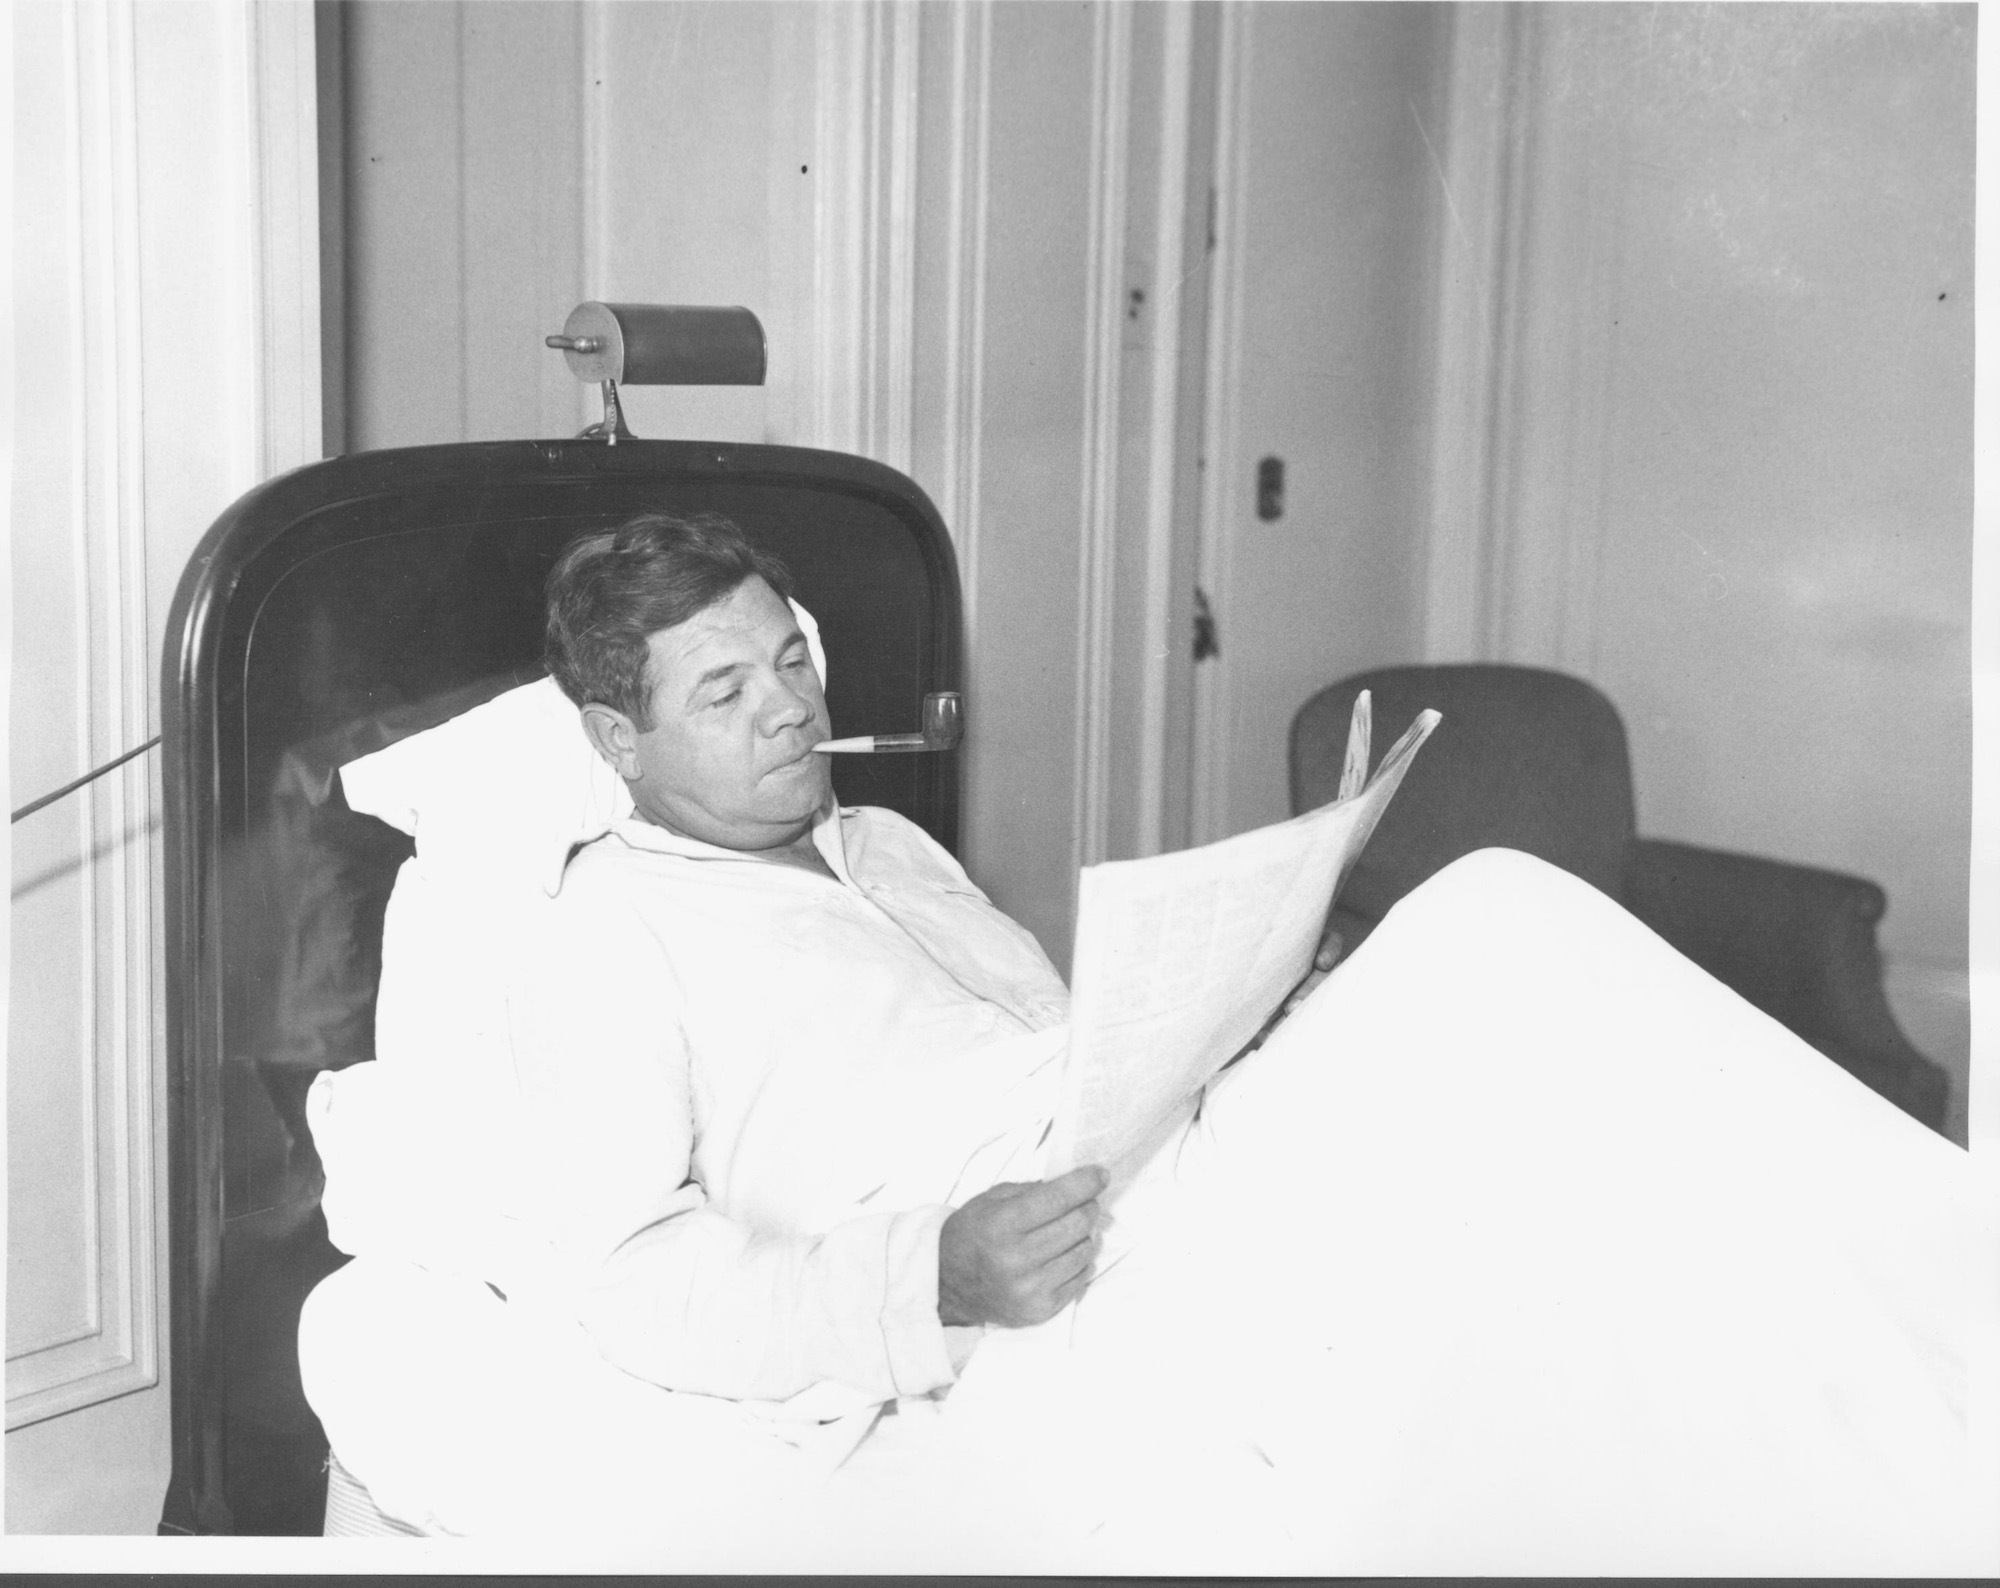 Babe Ruth Was Ravaged By a Rare Form of Cancer Before His Tragic Death